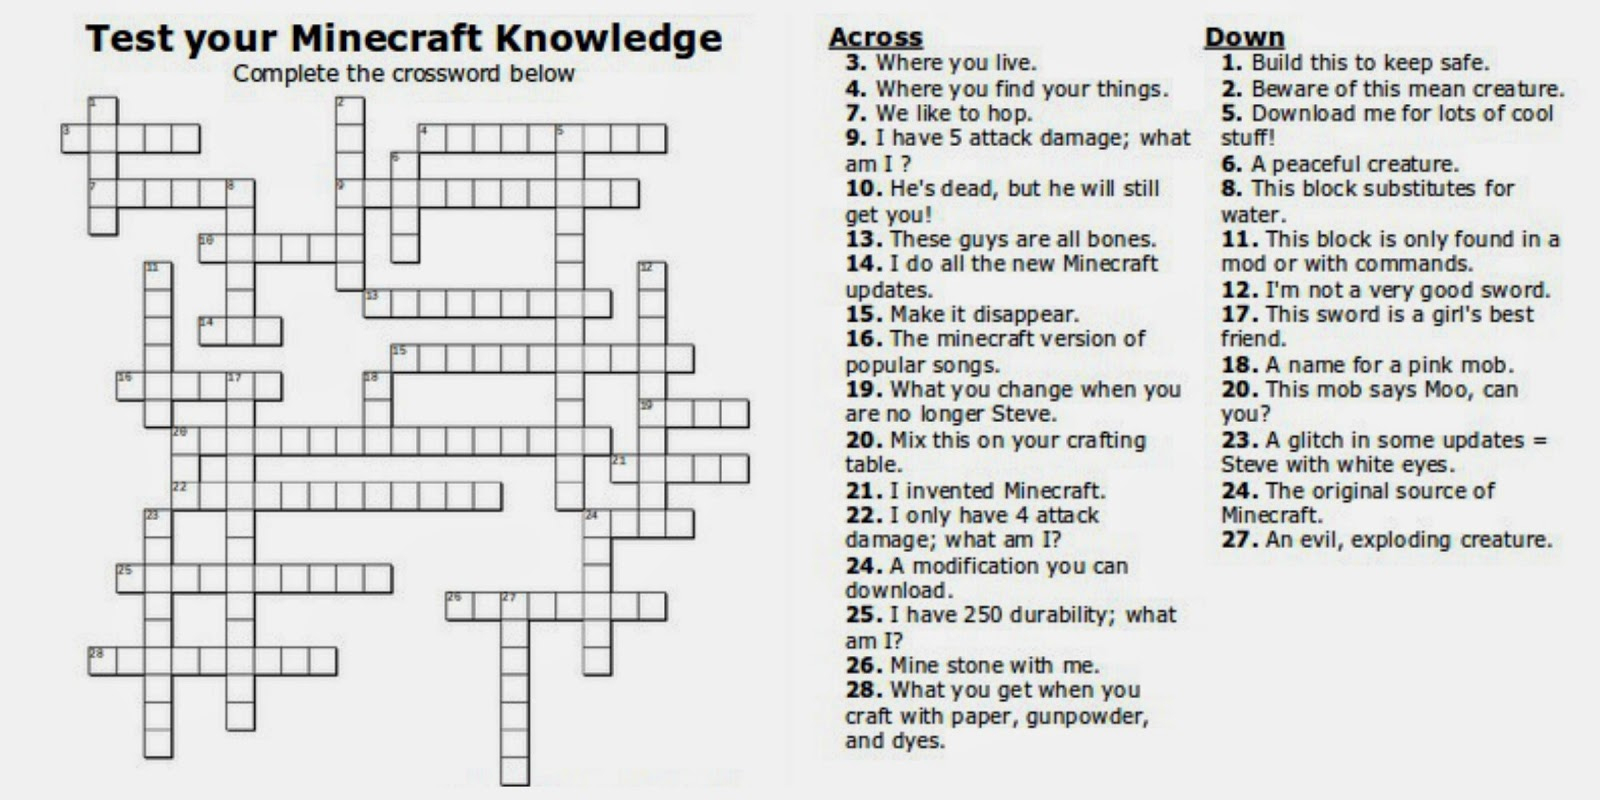 Free Printable Minecraft Crossword Search: Test Your Minecraft - Teenage Crossword Puzzles Printable Free